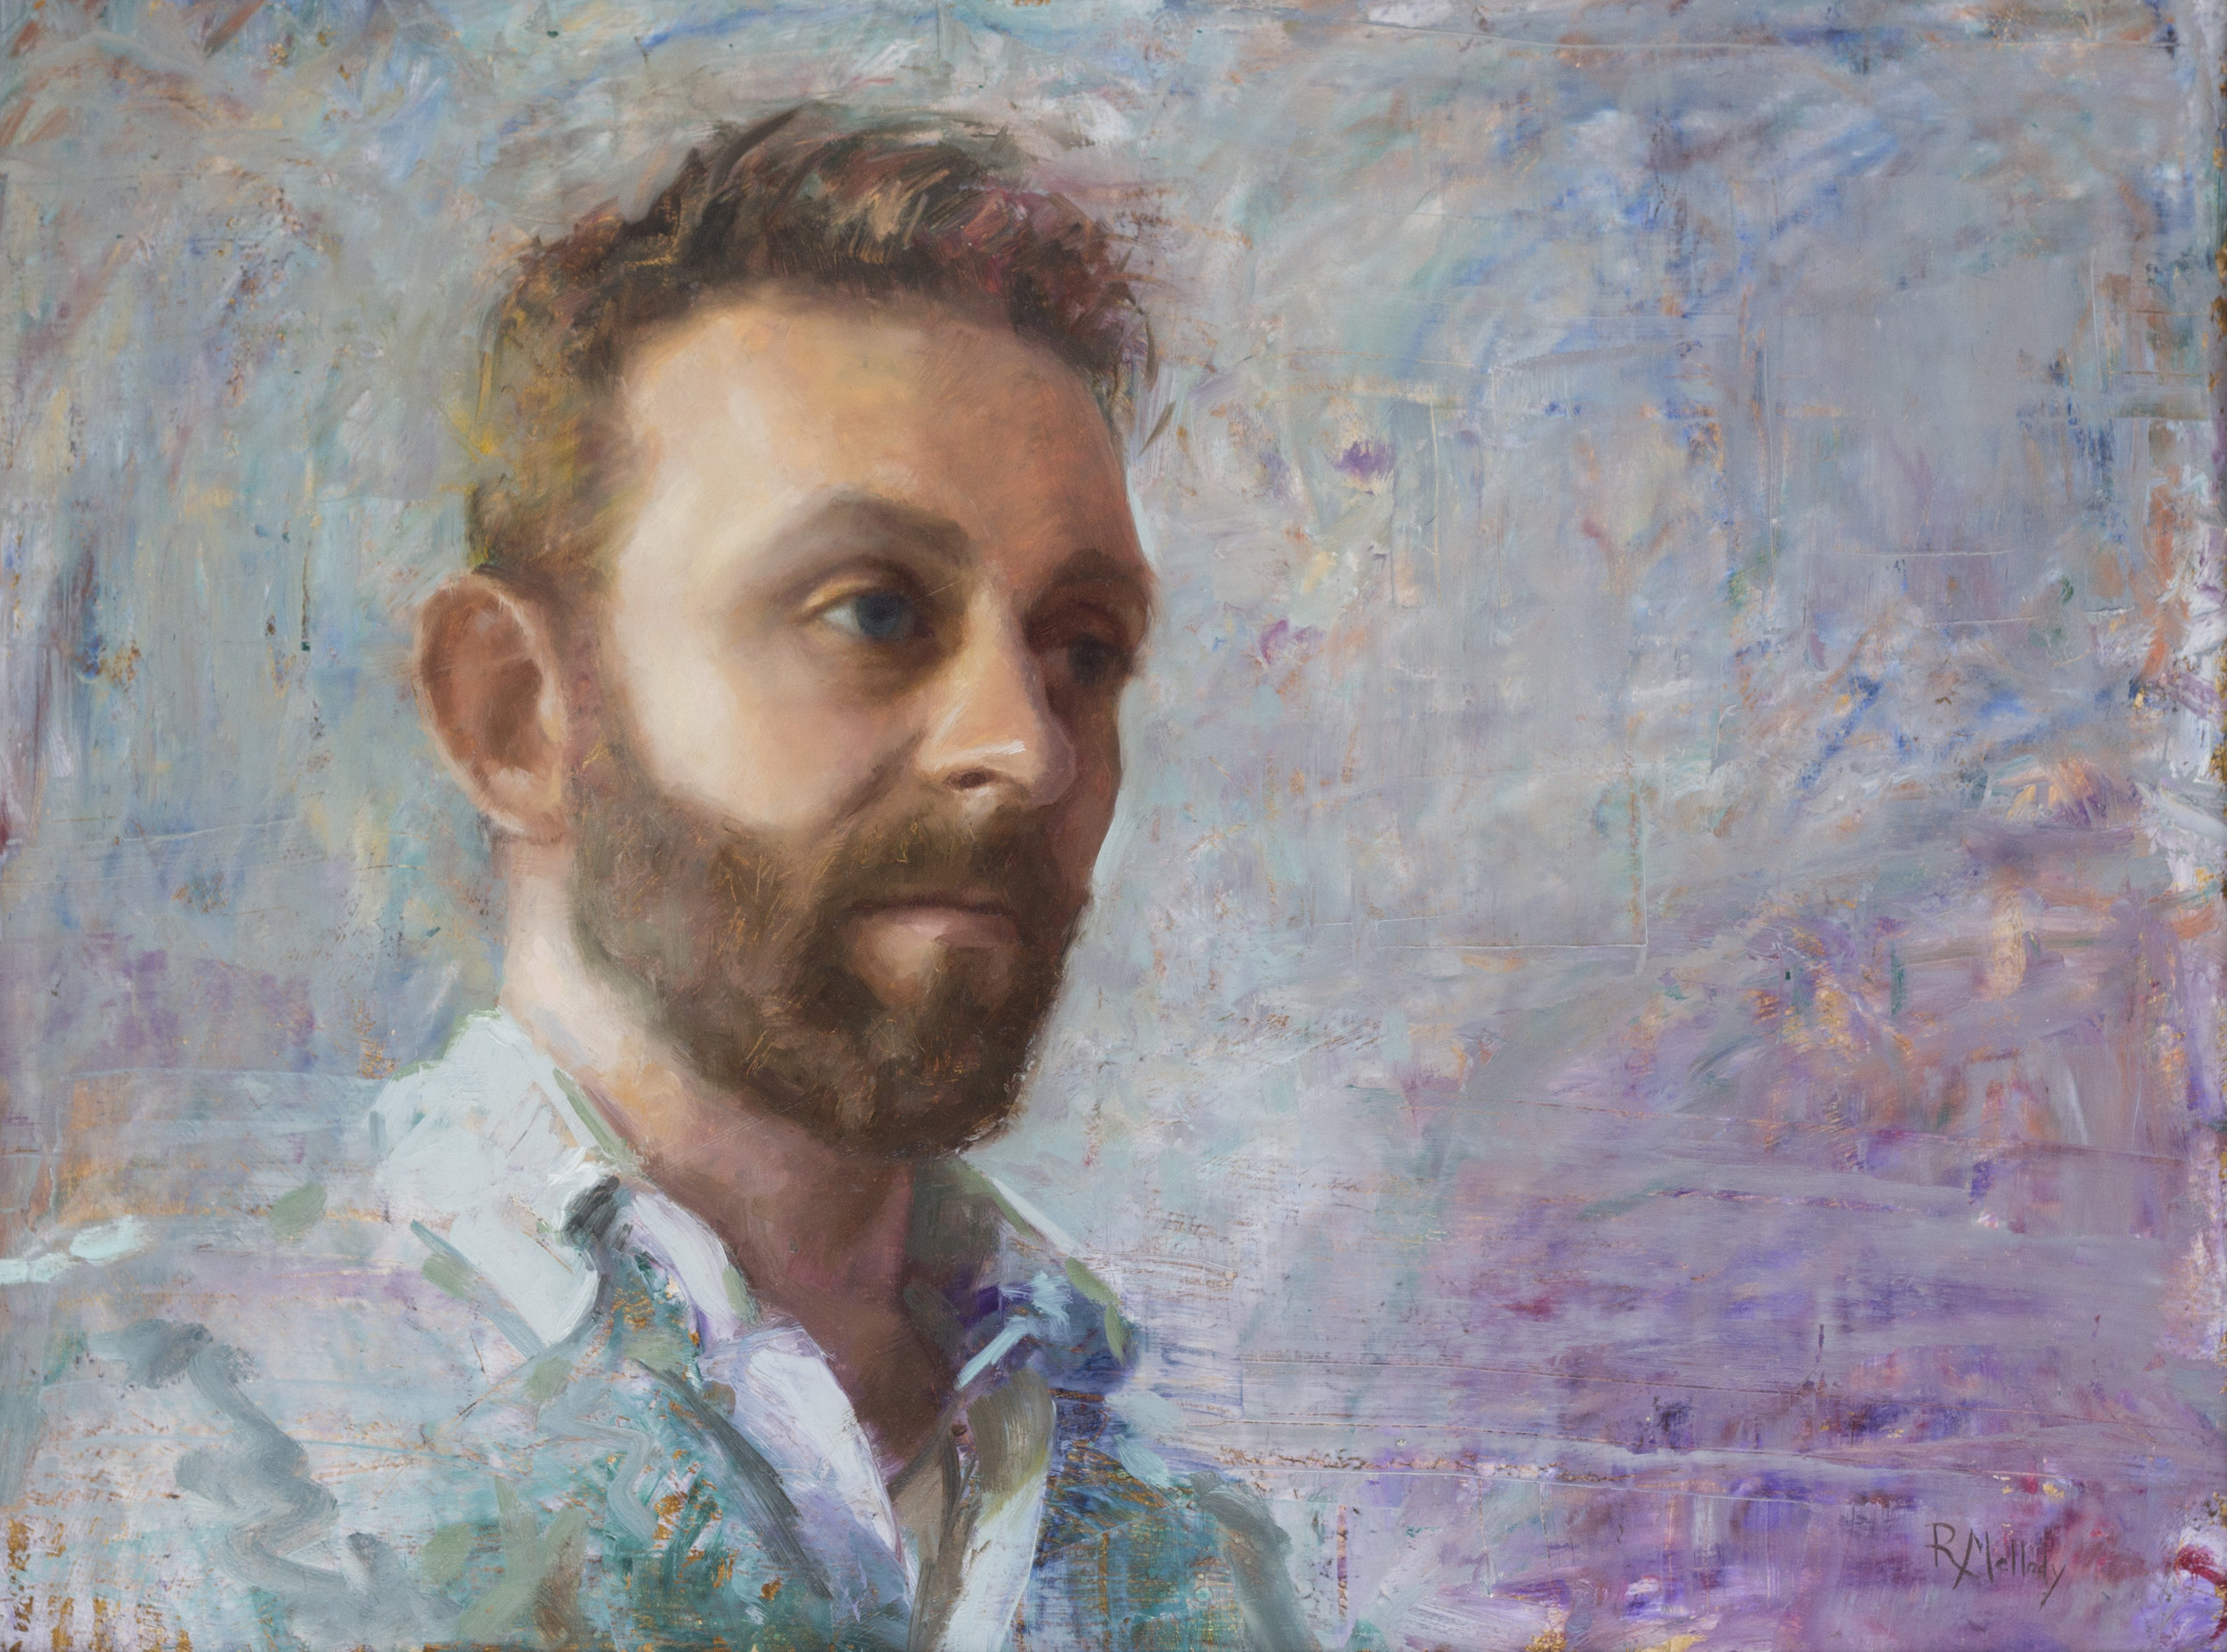 Self portrait at thirty-two, 24 x 18 inches, Oil on panel